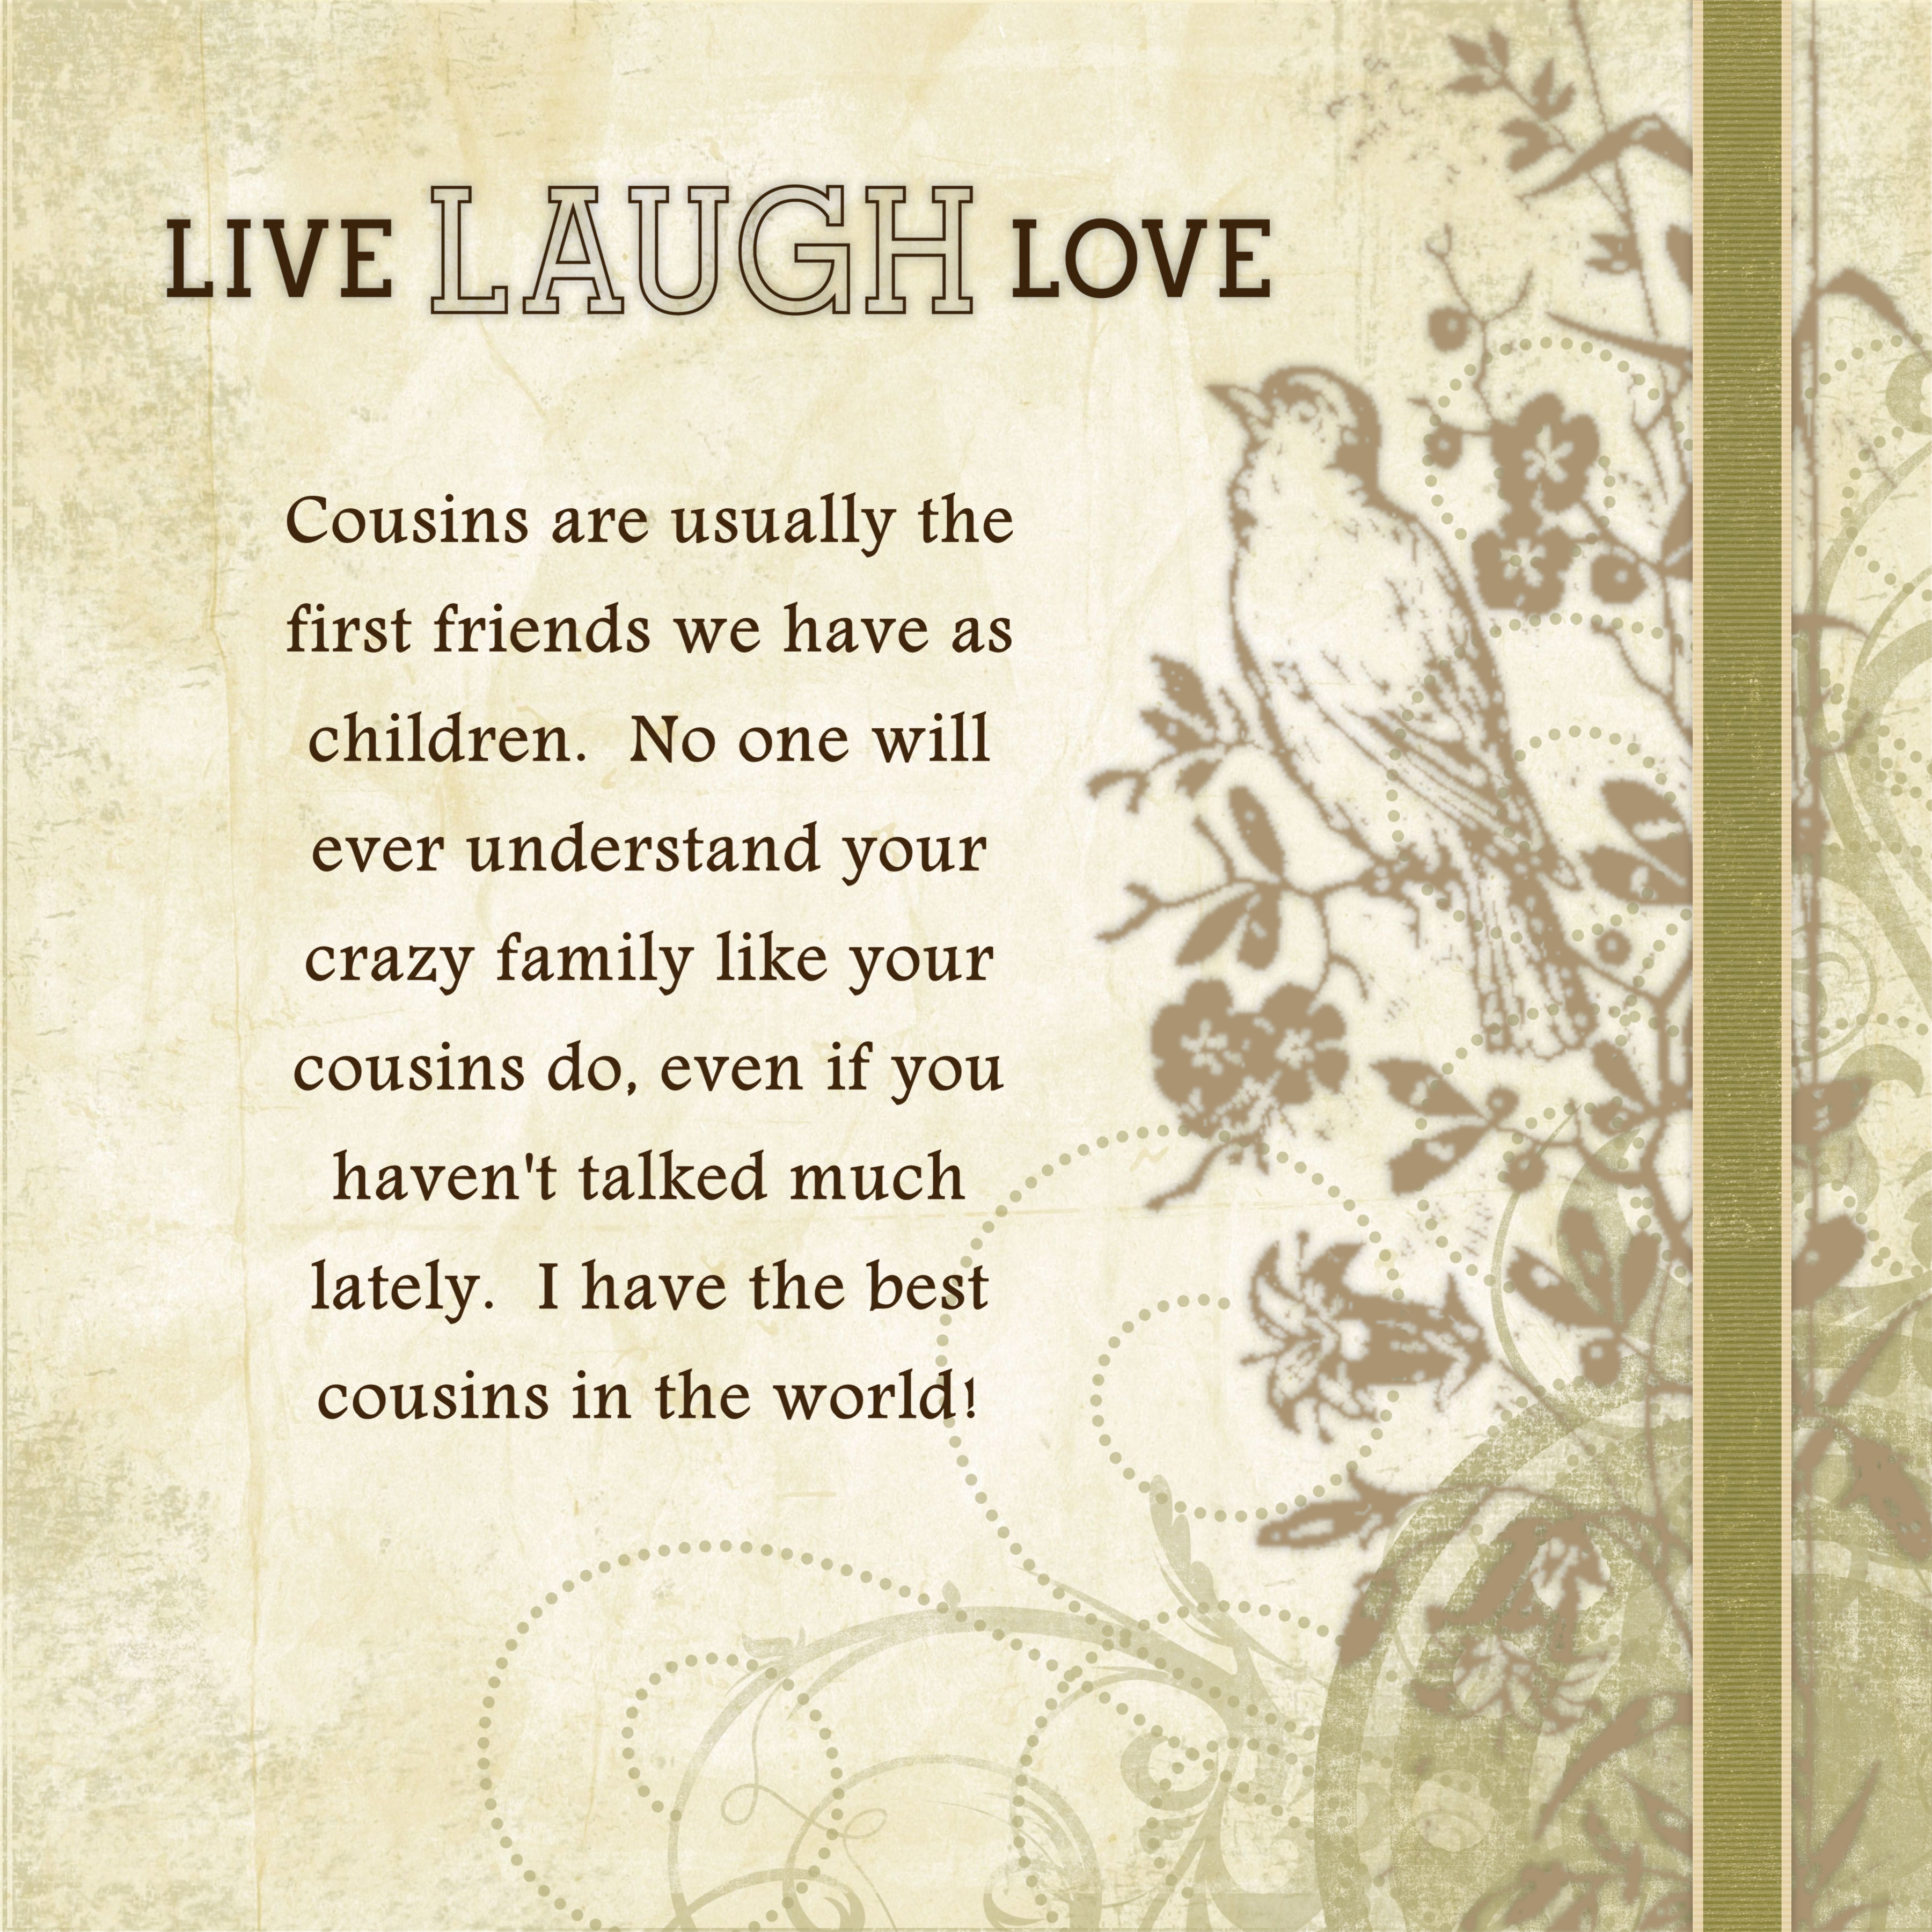 I Love You Quotes: Cousin Quotes And Sayings. QuotesGram